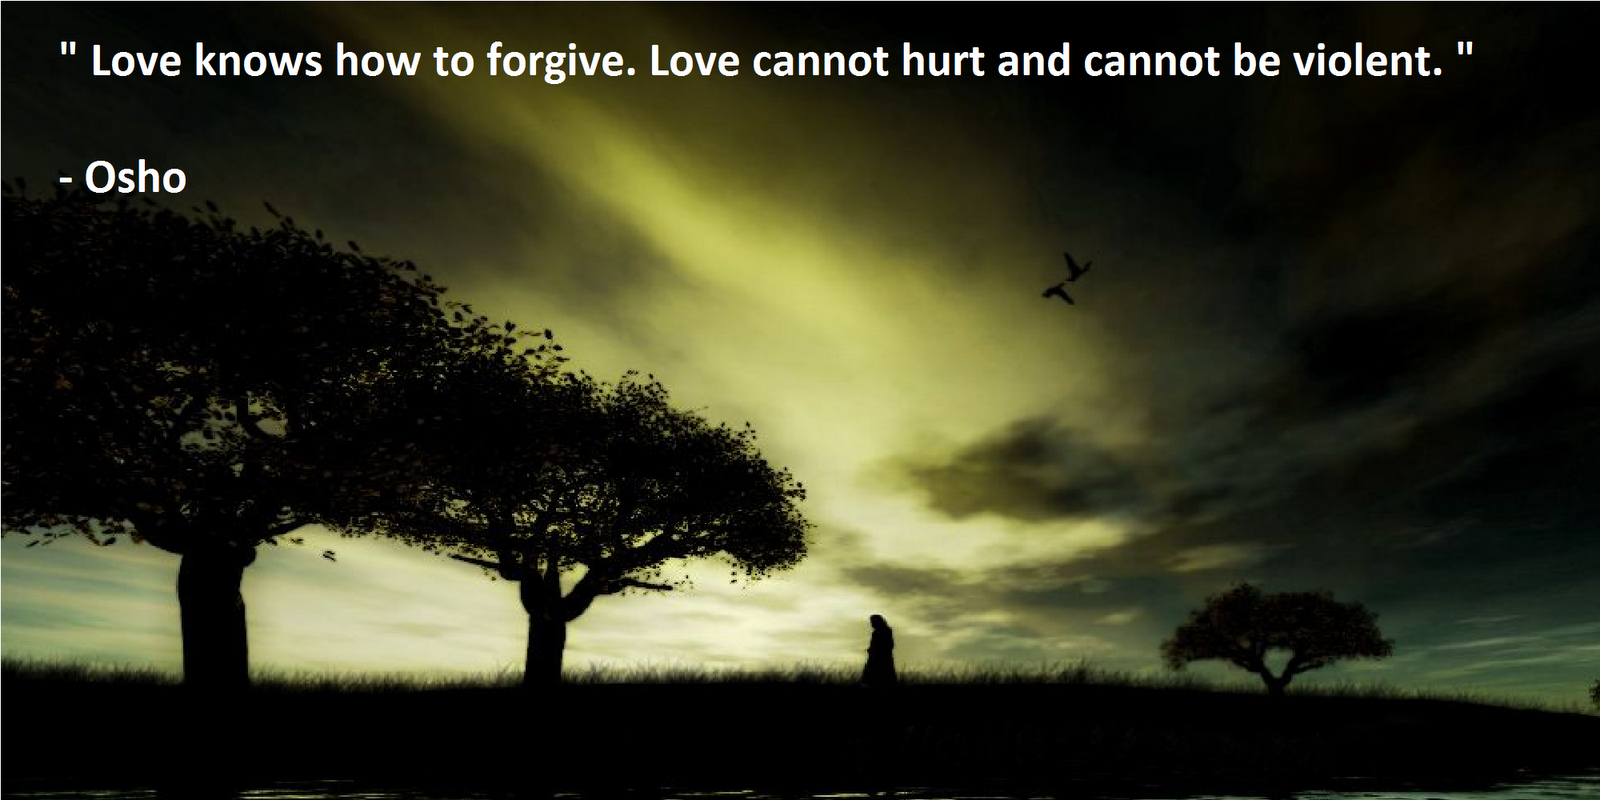 osho quotes on love quotesgram